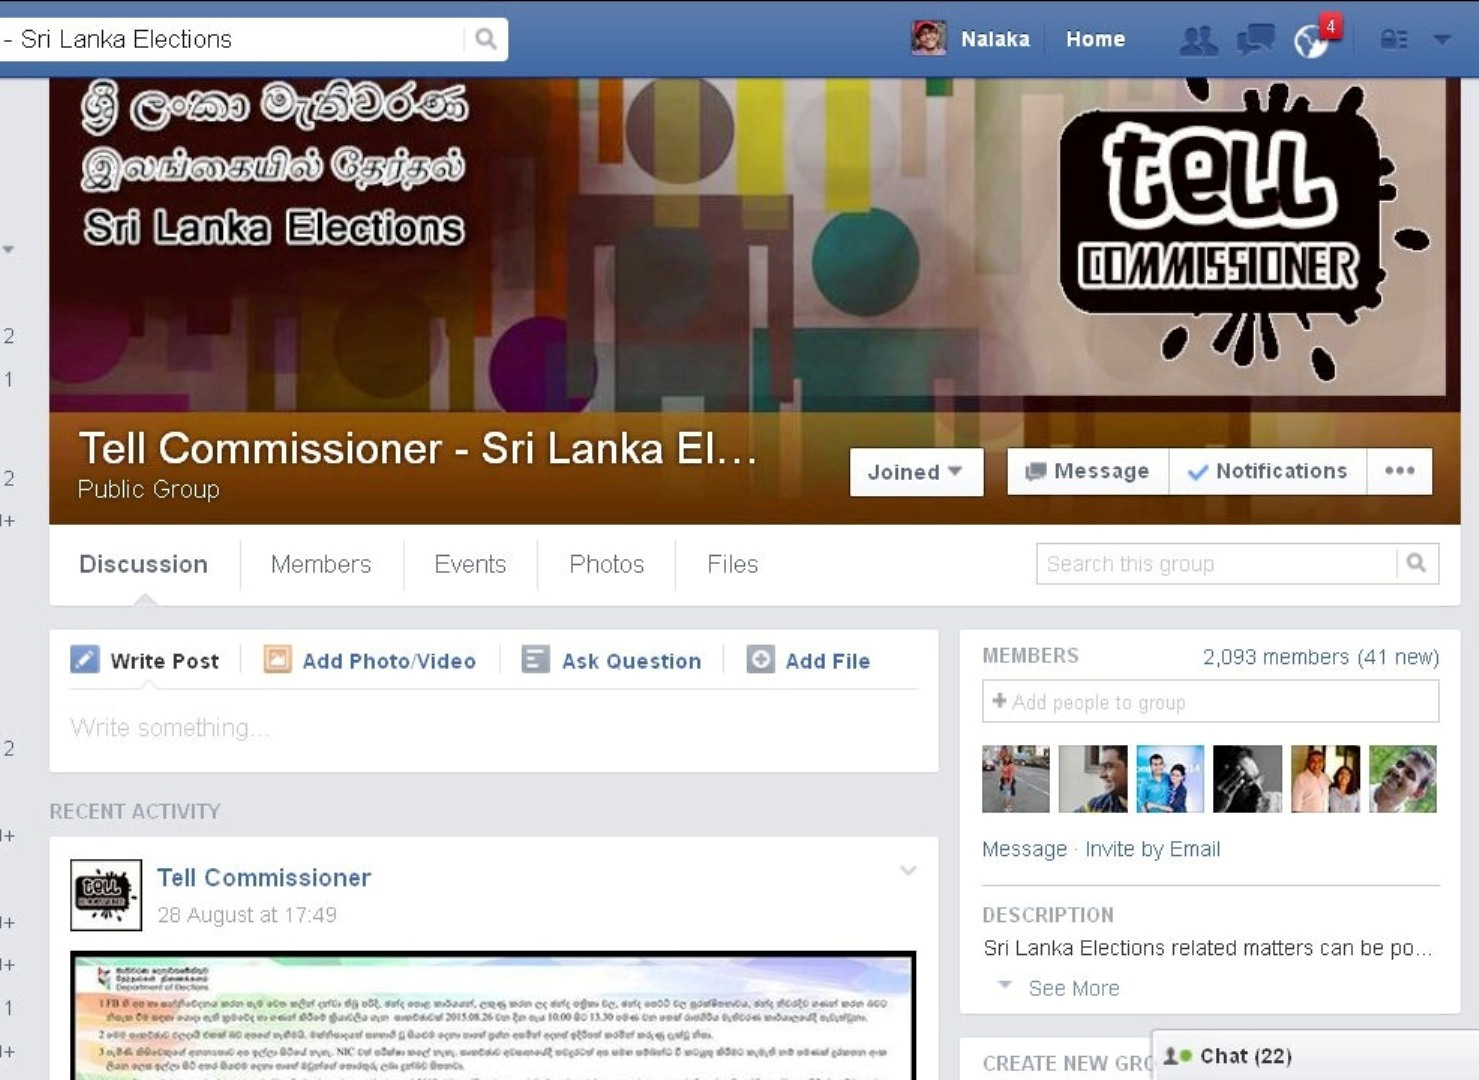 Tell Commissioner Facebook Page, captured on 31 Aug 2015